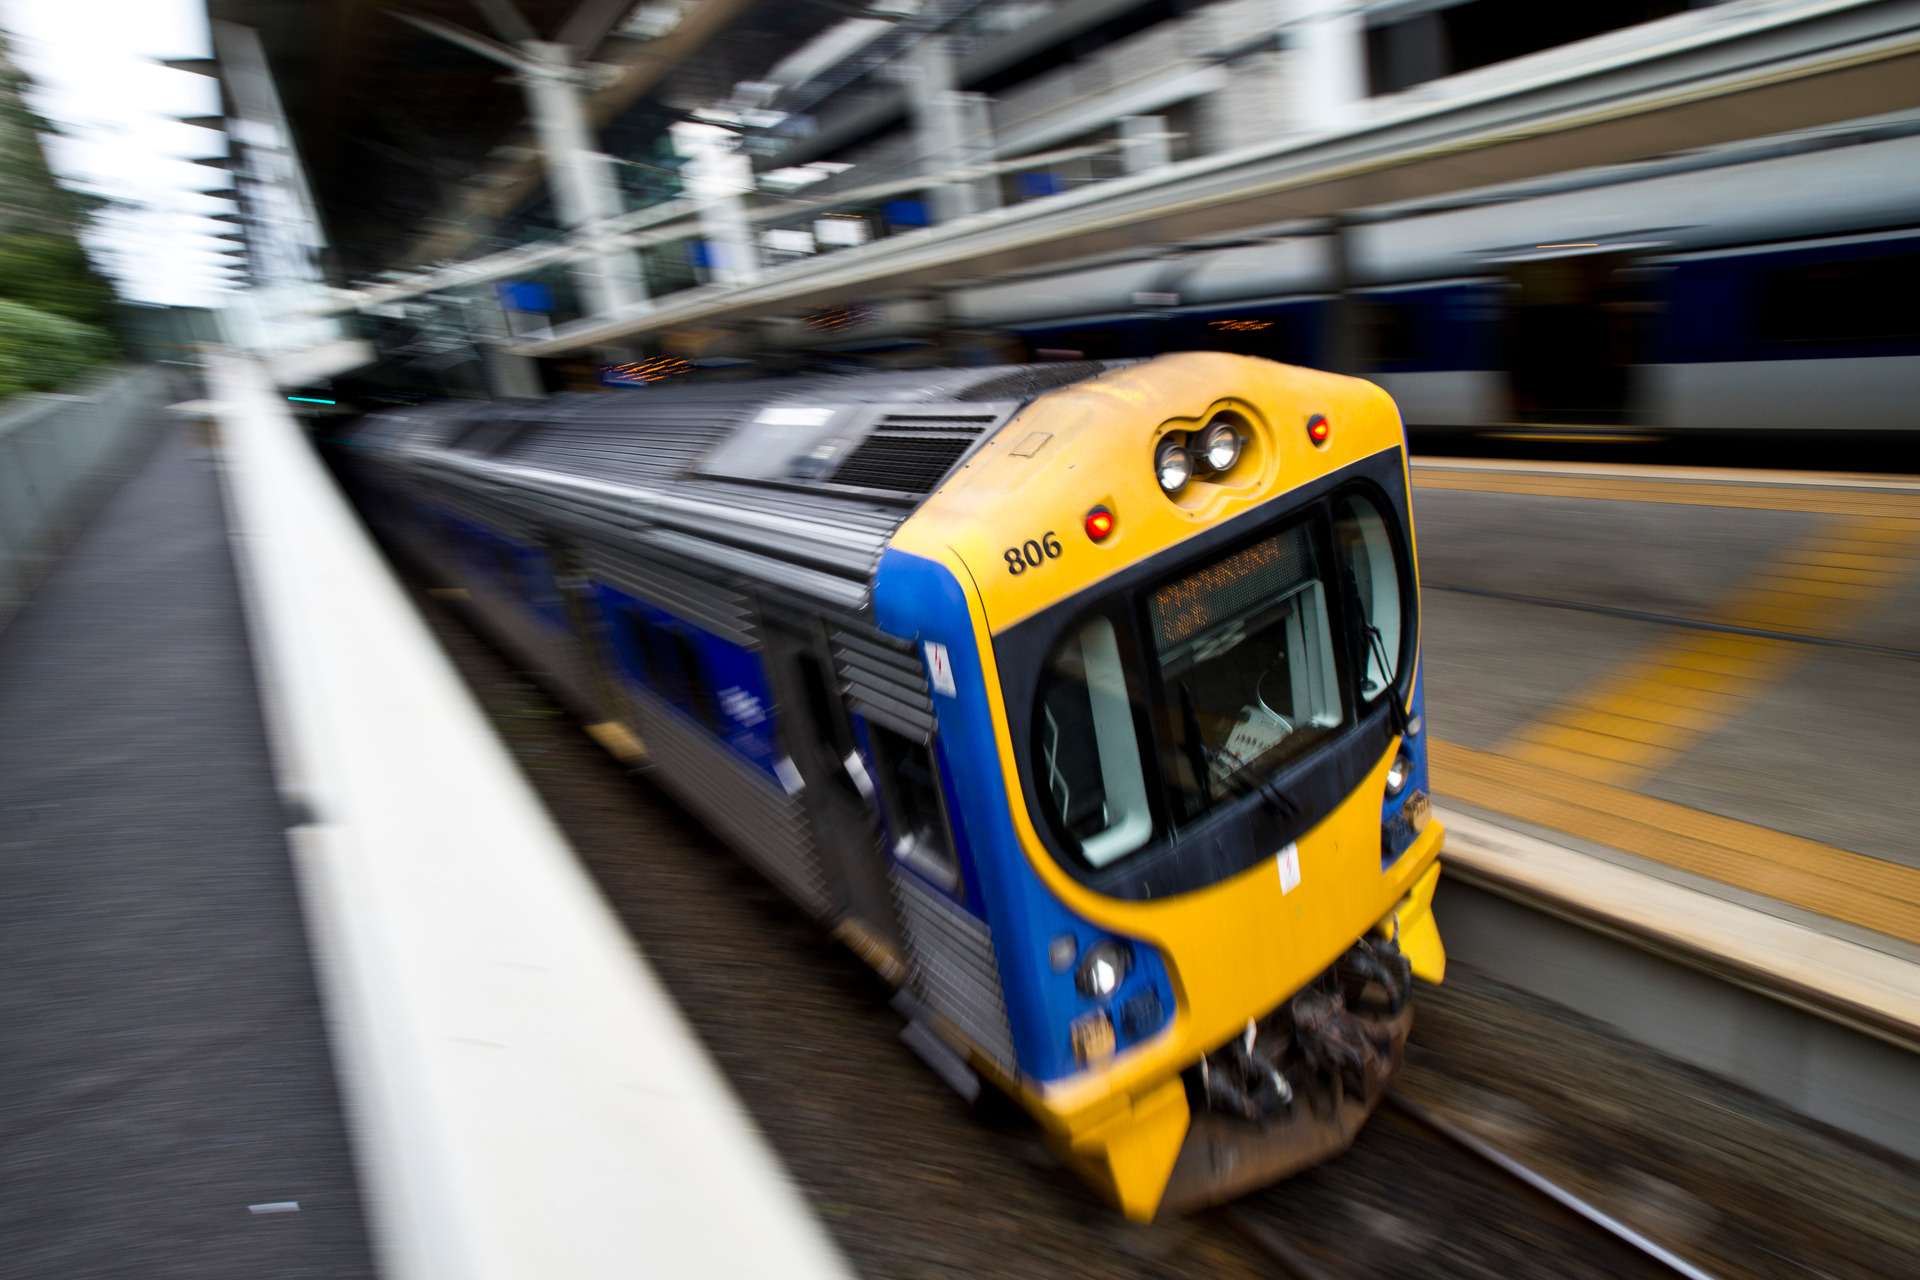 Auckland commuters could face major delays from tomorrow as dispute between train staff and employer continues